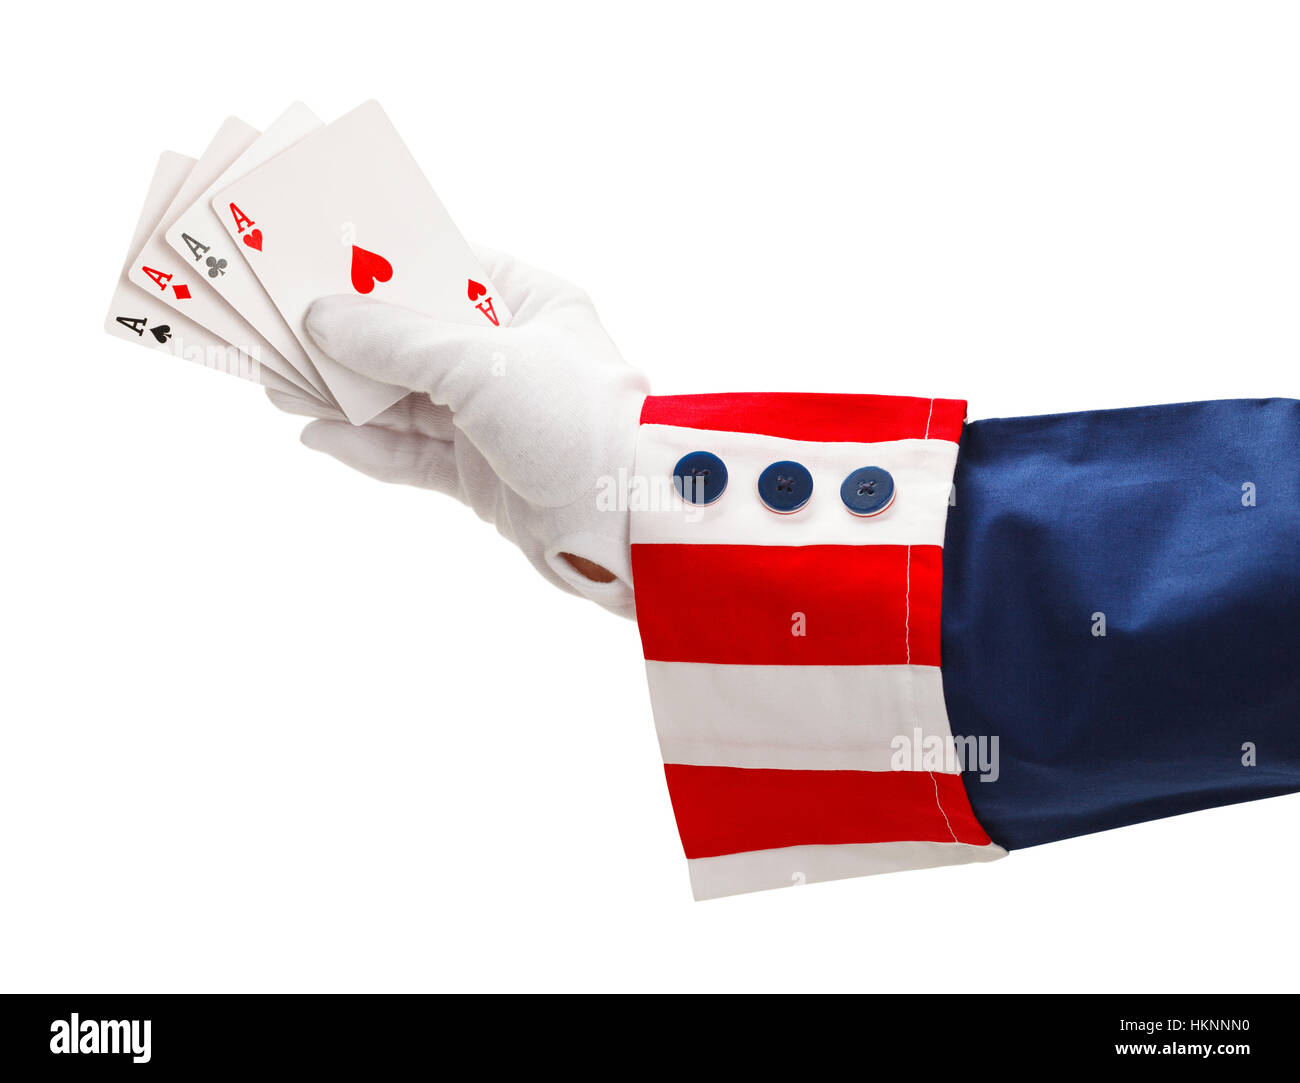 President With Four Aces in Hand Isolated on White Background. - Stock Image